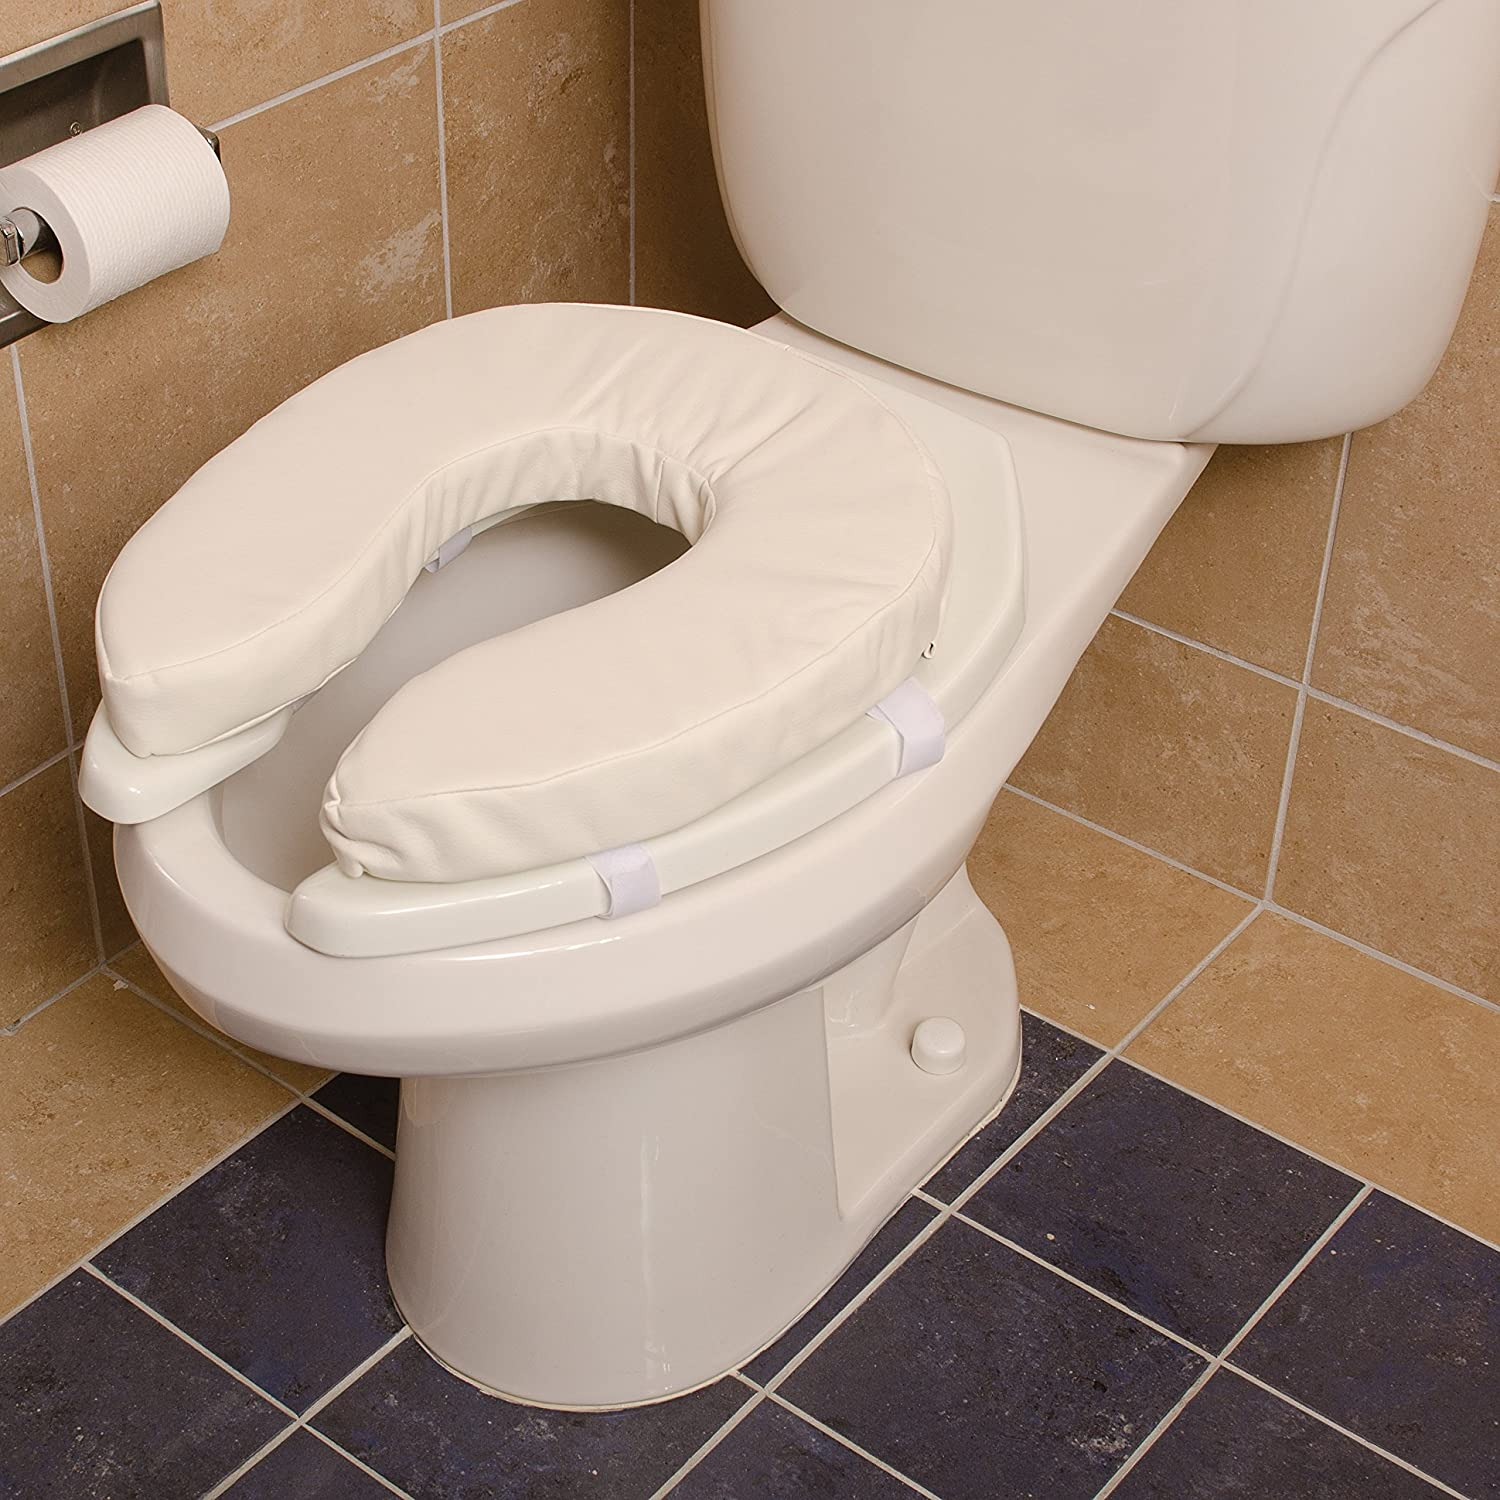 Amazon.com: Duro-Med Toilet Seat Cushion, Cushioned Toilet Seat ...